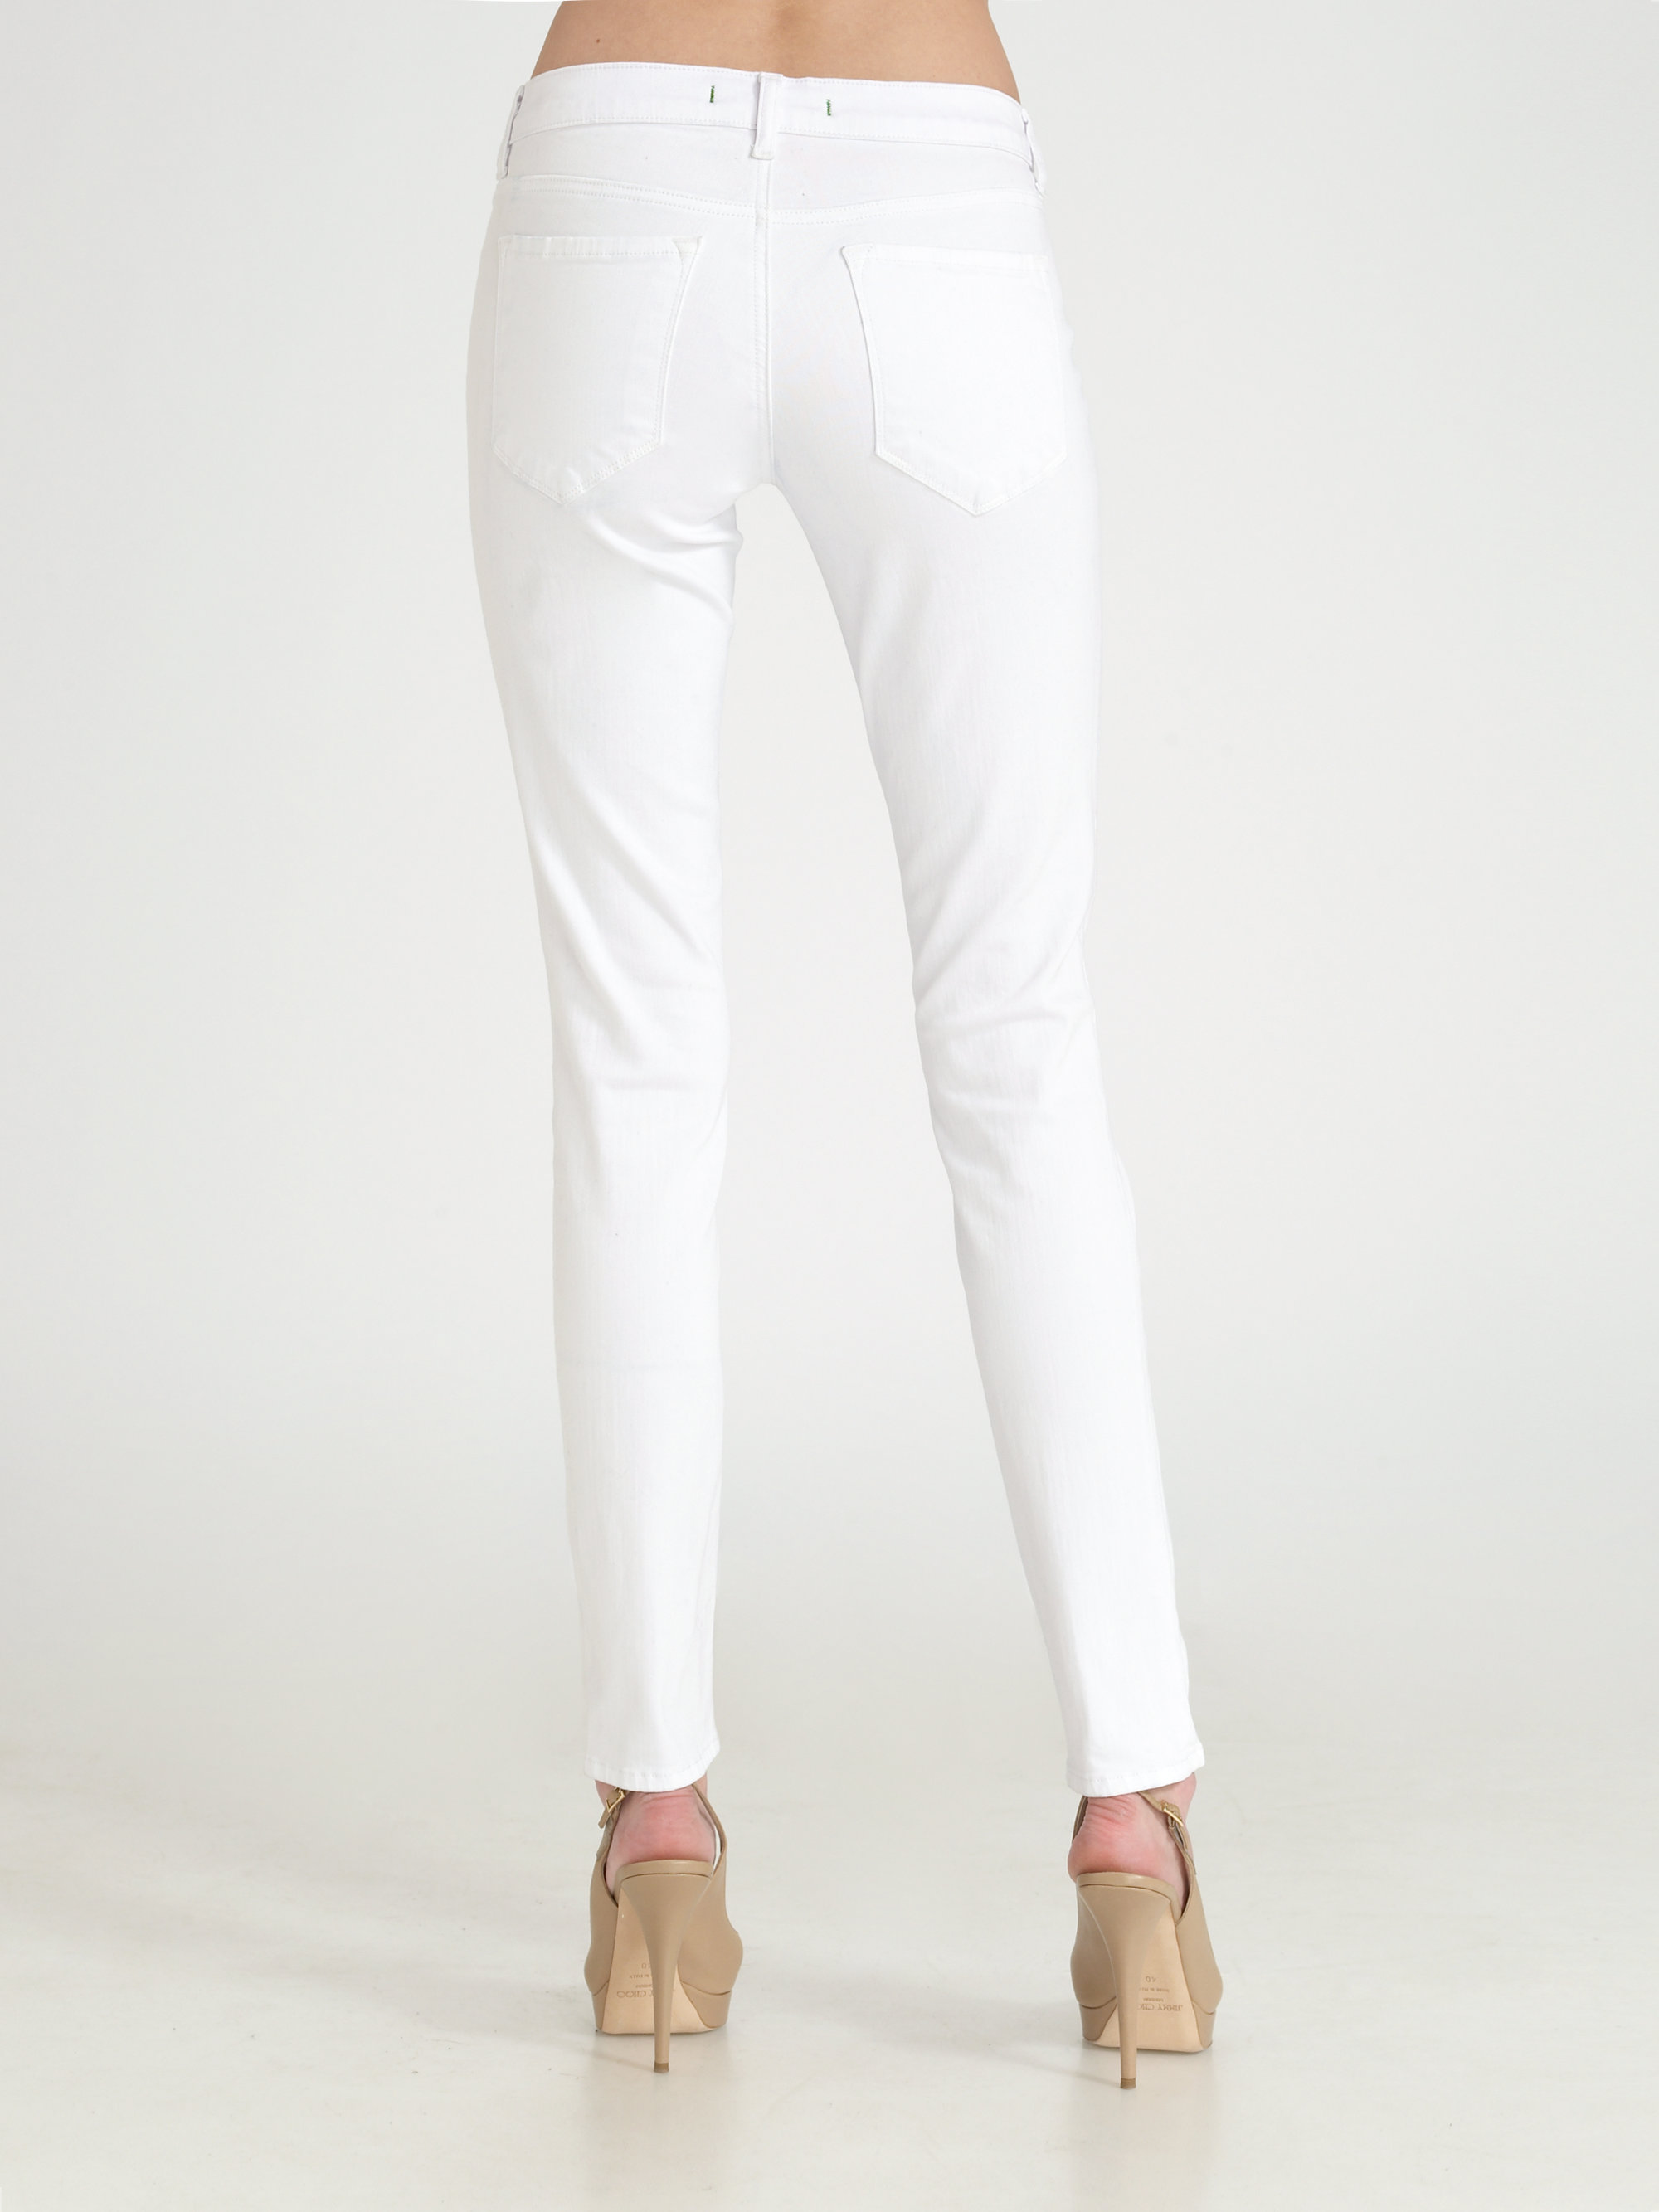 J brand Legging Jeans in White | Lyst